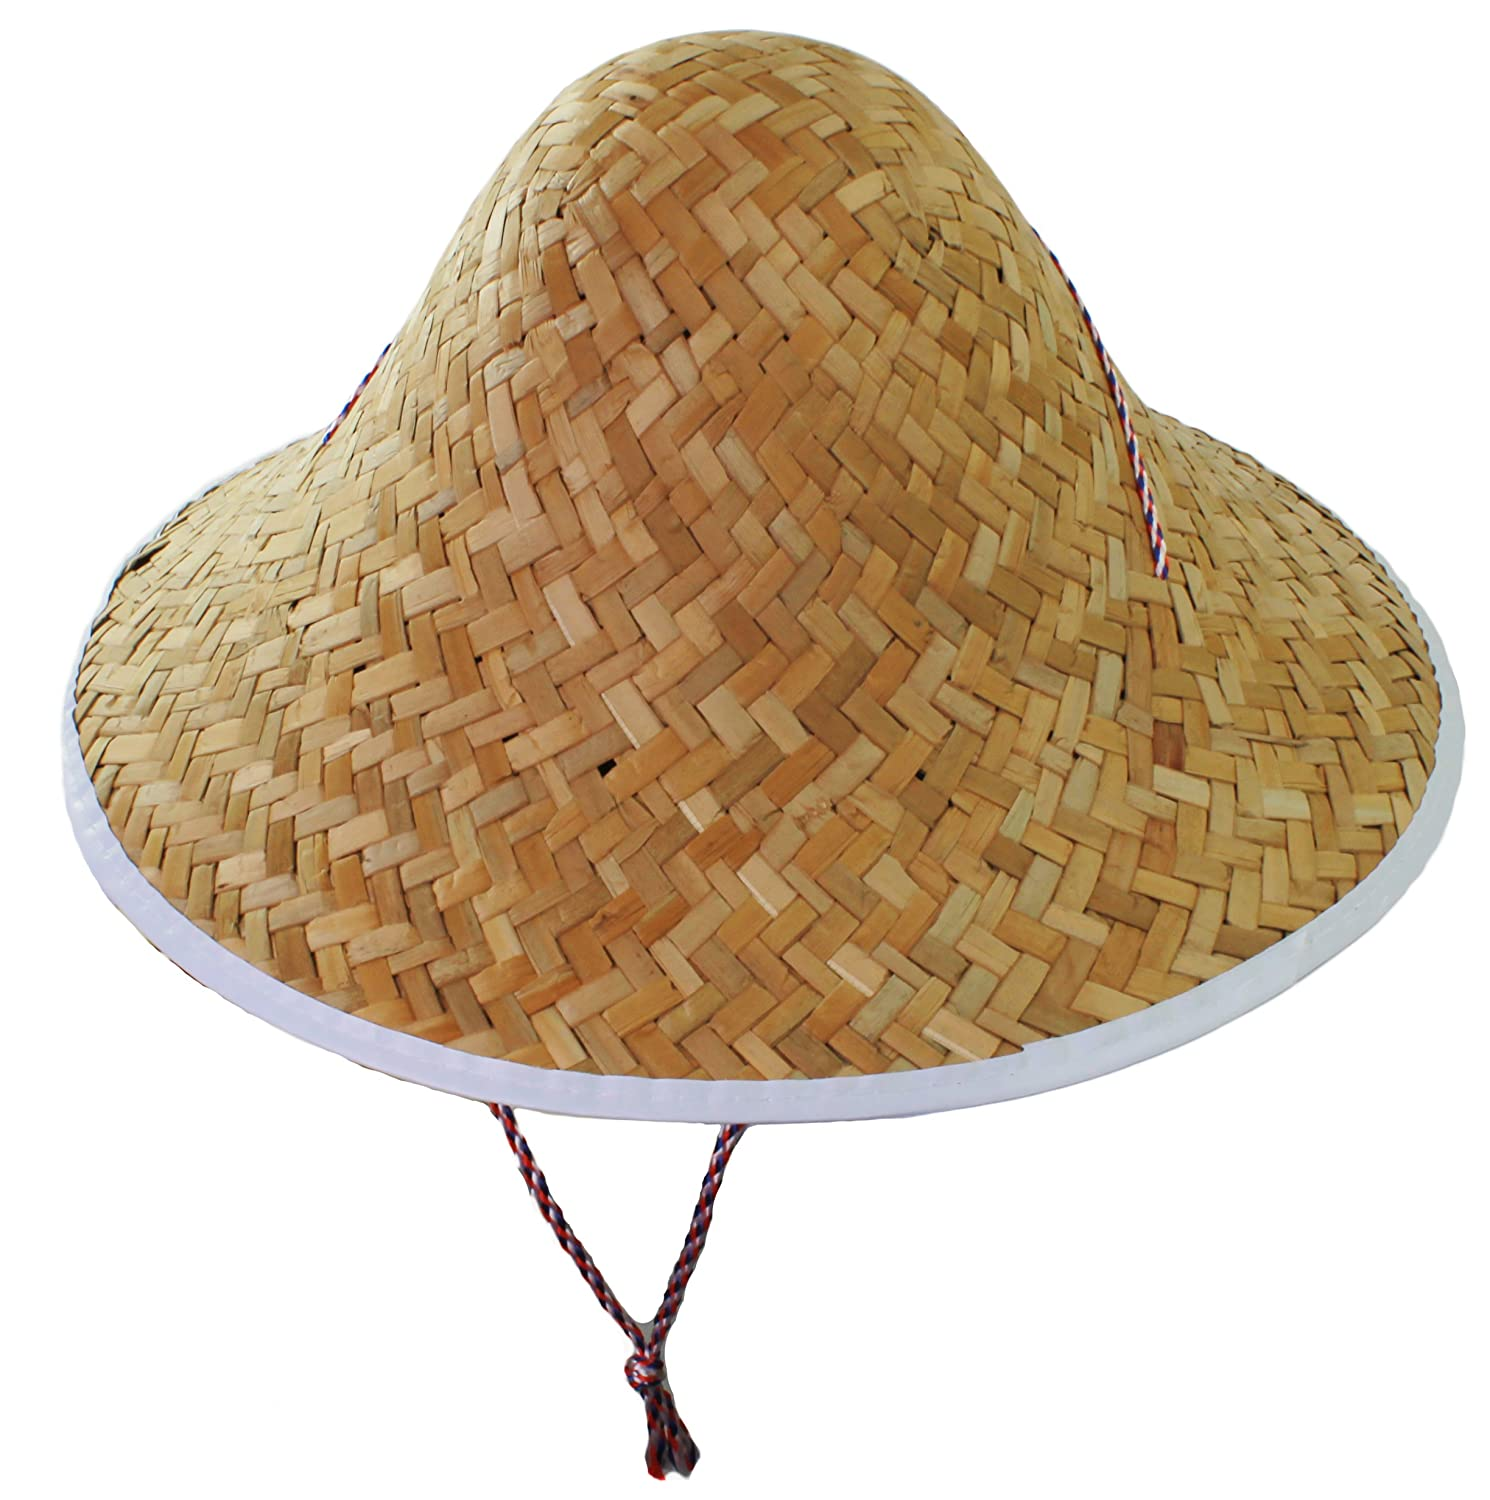 CHINESE ORIENTAL COOLIE HAT   CHINA MAN MOUSTACHE FANCY DRESS COSTUME SET  ASIAN STRAW HAT  Amazon.co.uk  Toys   Games c48061db970d